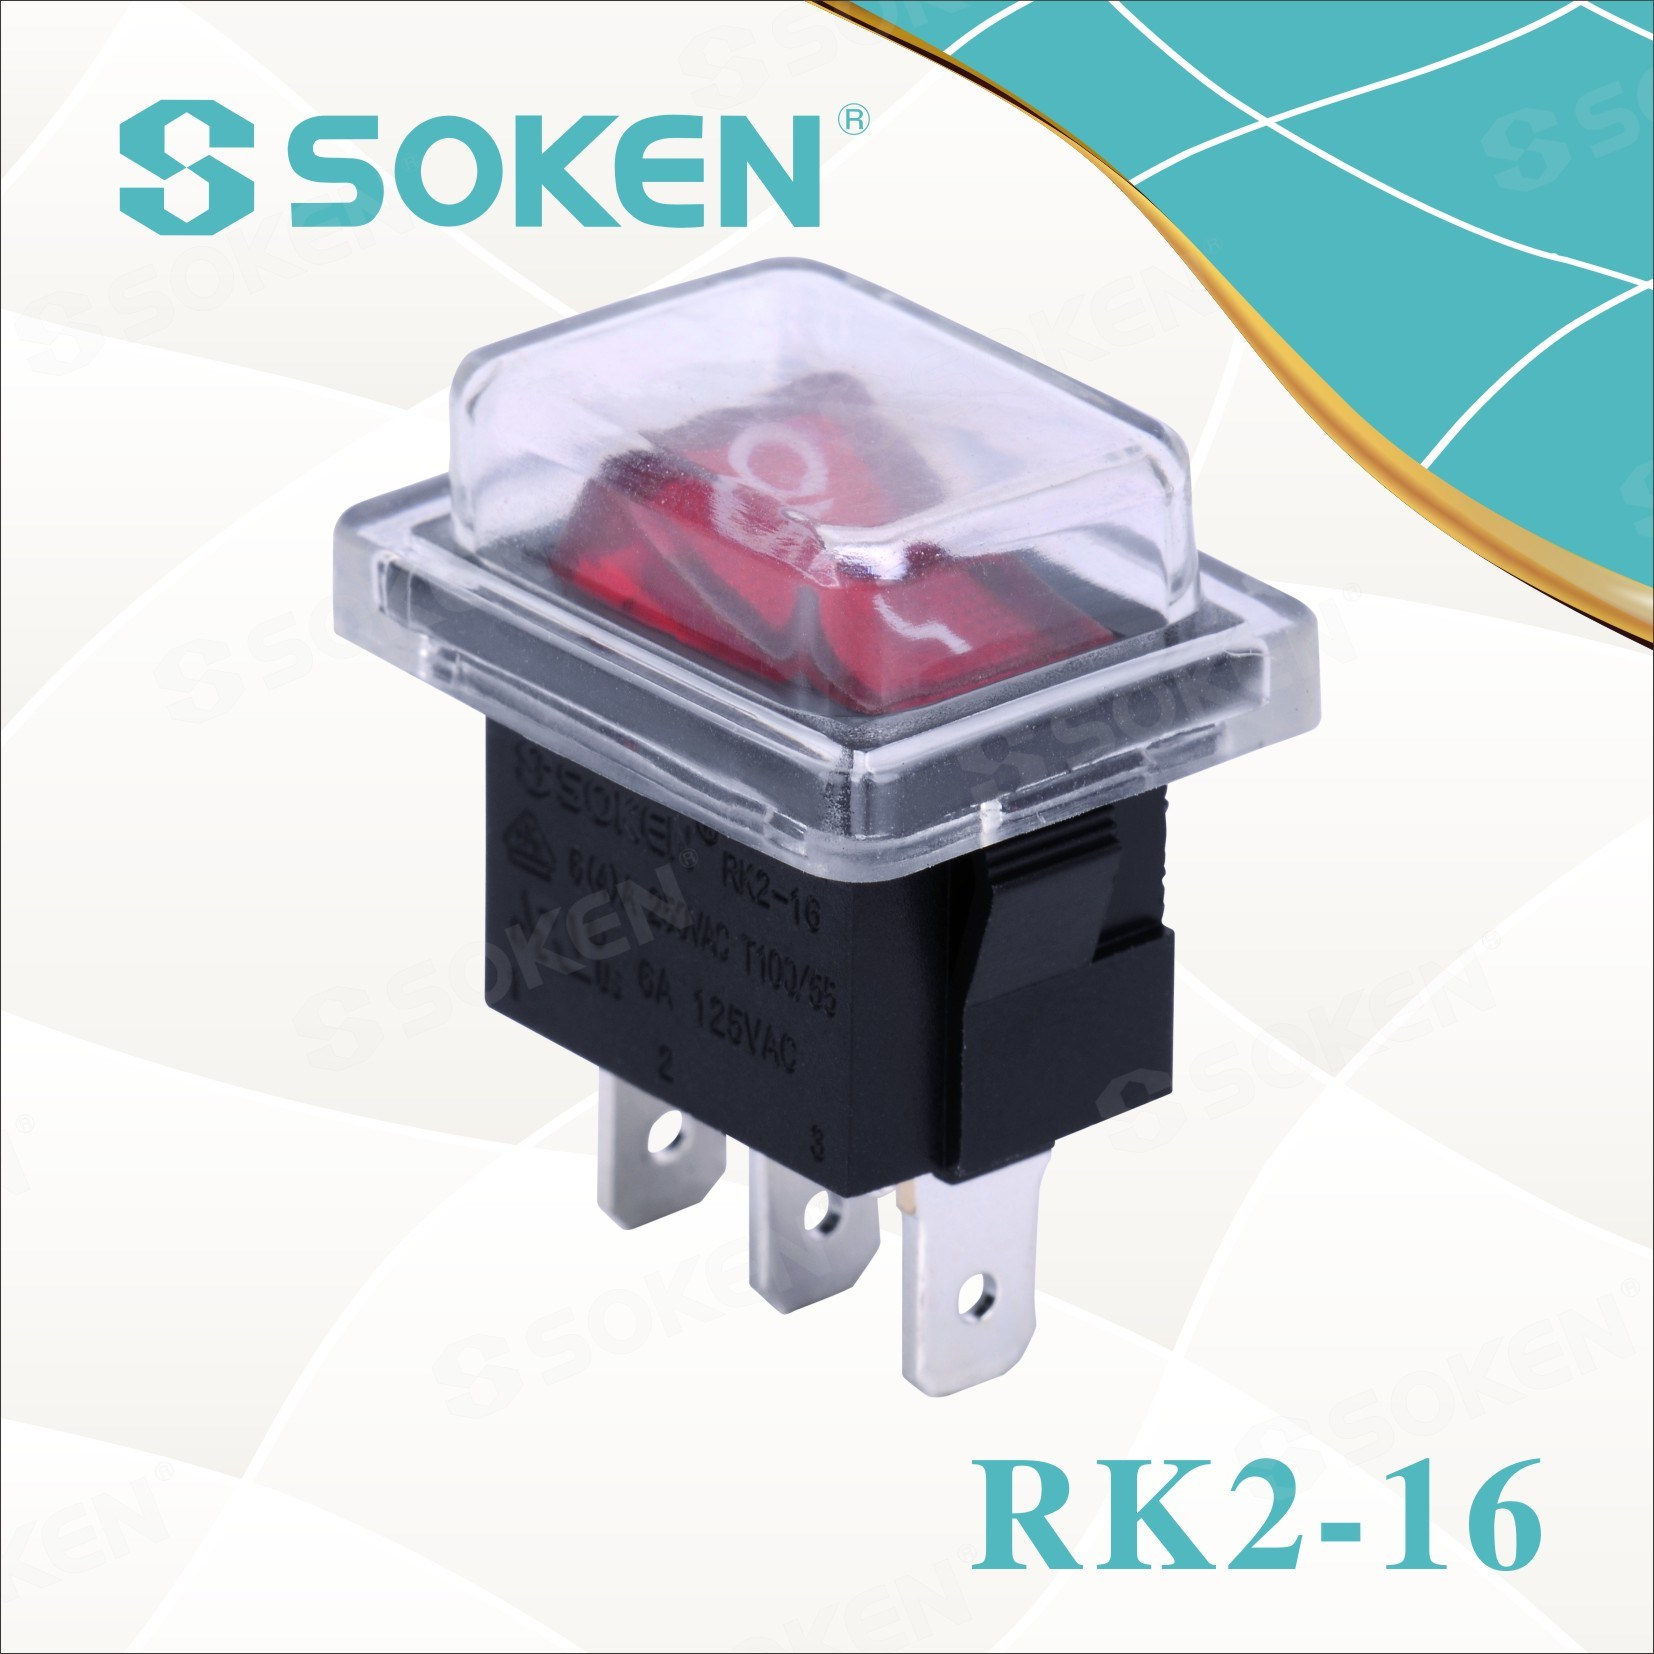 Sokne Rk2-16 1X1n Αδιάβροχο on off Rocker Switch